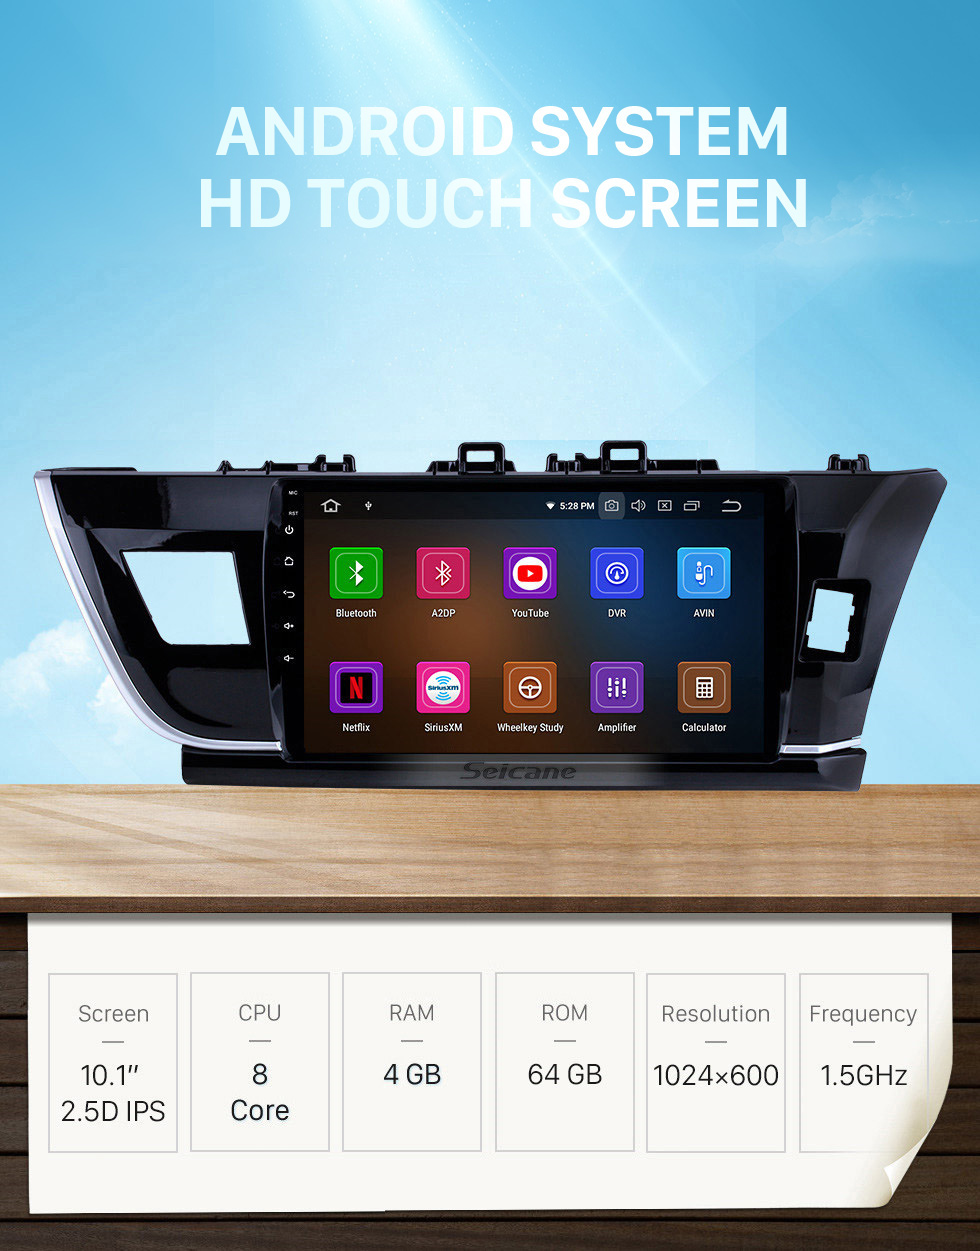 Seicane 10.1 inch Android 10.0 HD touchscreen Radio GPS Navigation System for 2014 Toyota Corolla RHD Bluetooth Rearview camera TV 1080P 4G WIFI Steering Wheel Control Mirror link